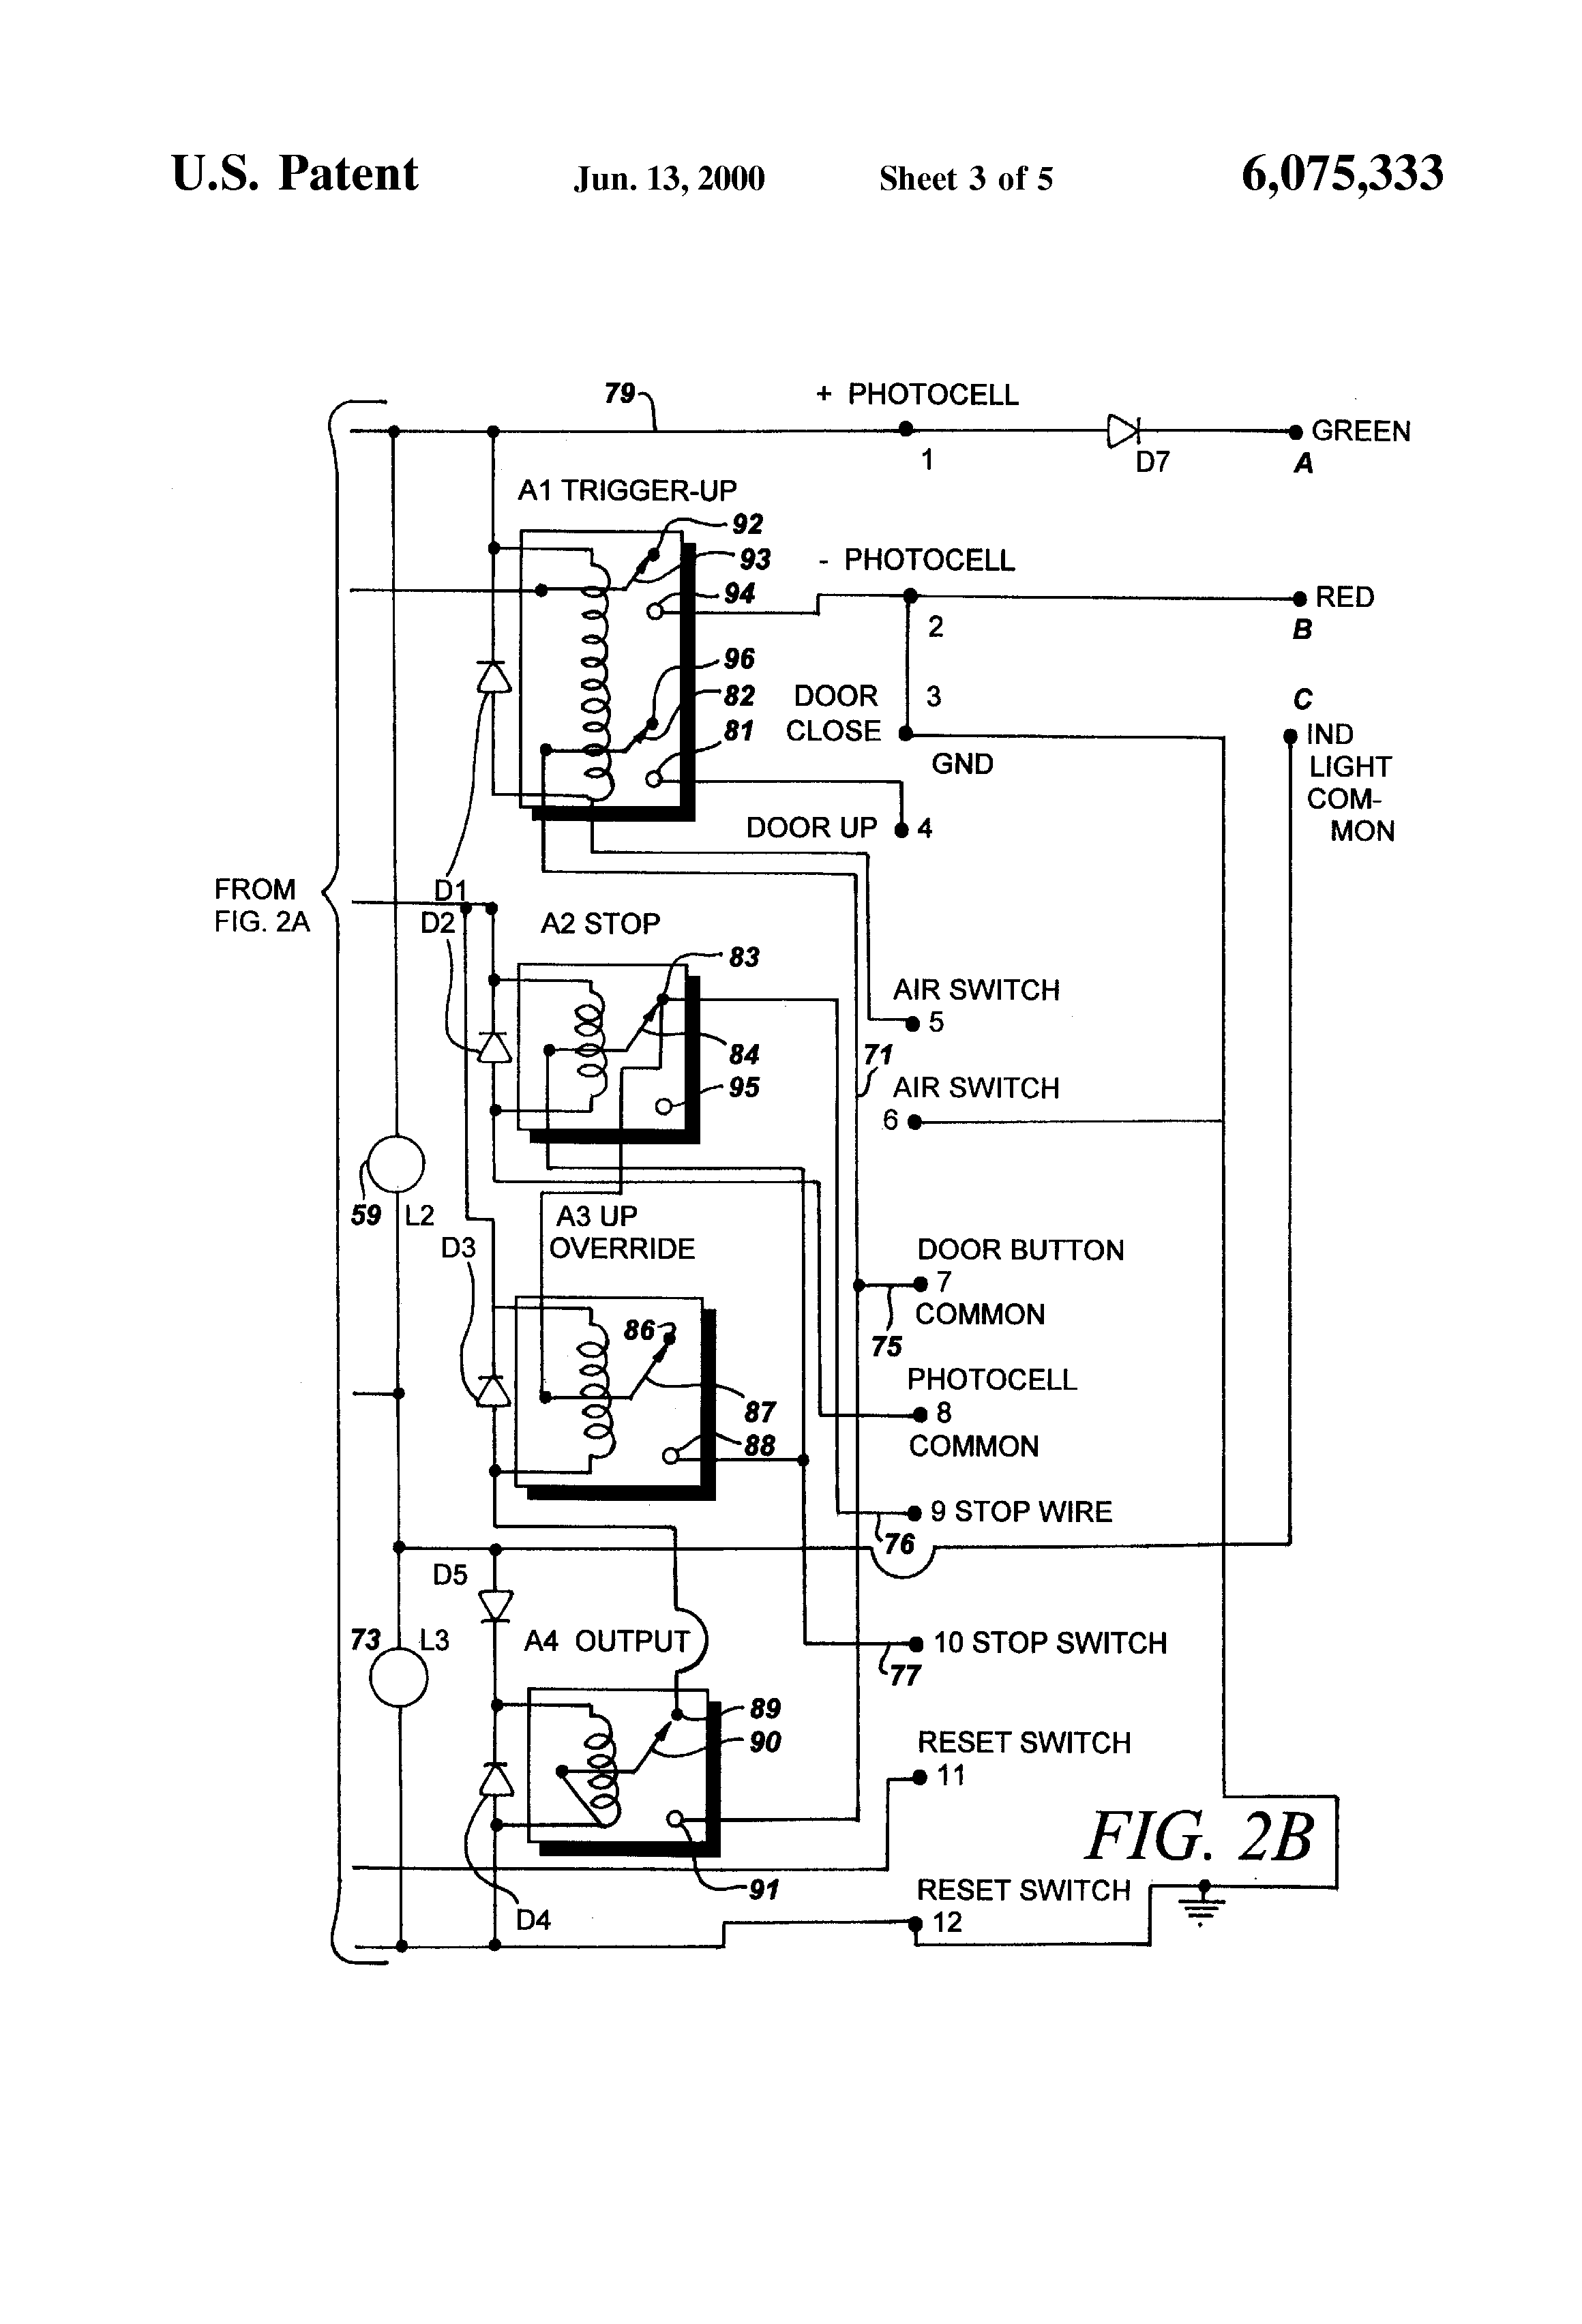 US6075333 3 patent us6075333 kit for retrofitting manually operated electric telectron rd14-6 wiring diagram at creativeand.co